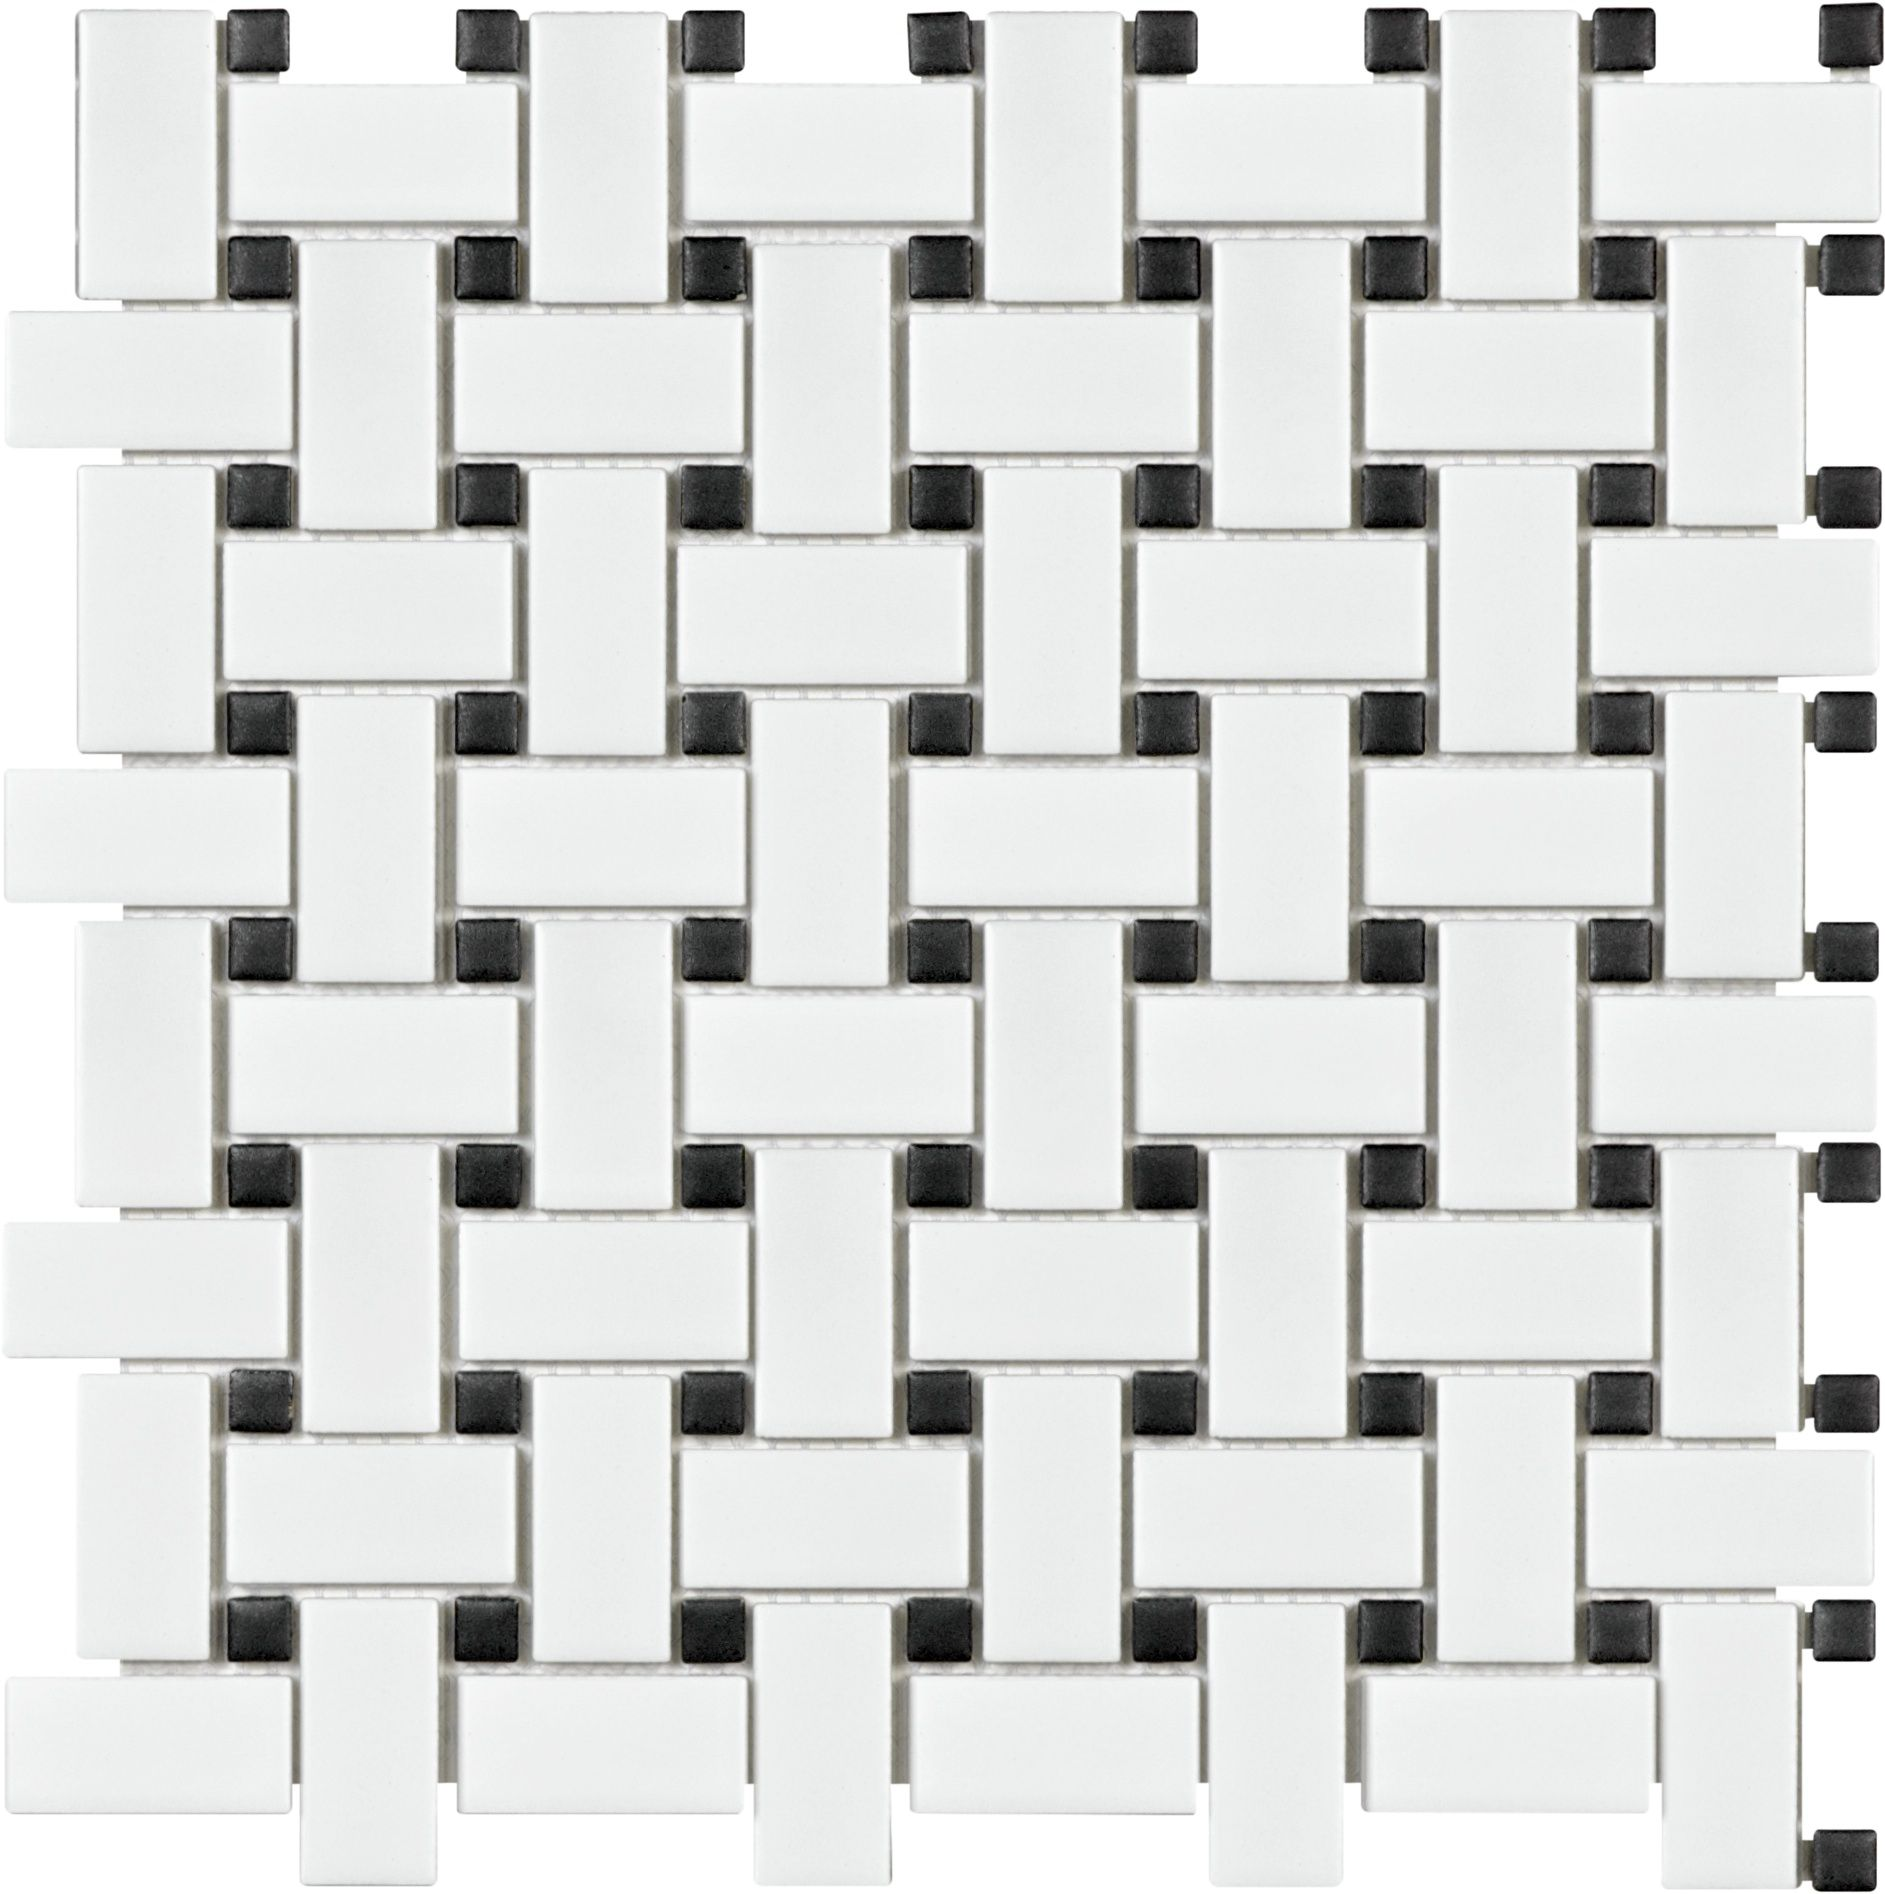 Basketweave mosaic soho white black basketweave tile ceramic basketweave mosaic soho white black basketweave tile ceramic dailygadgetfo Gallery